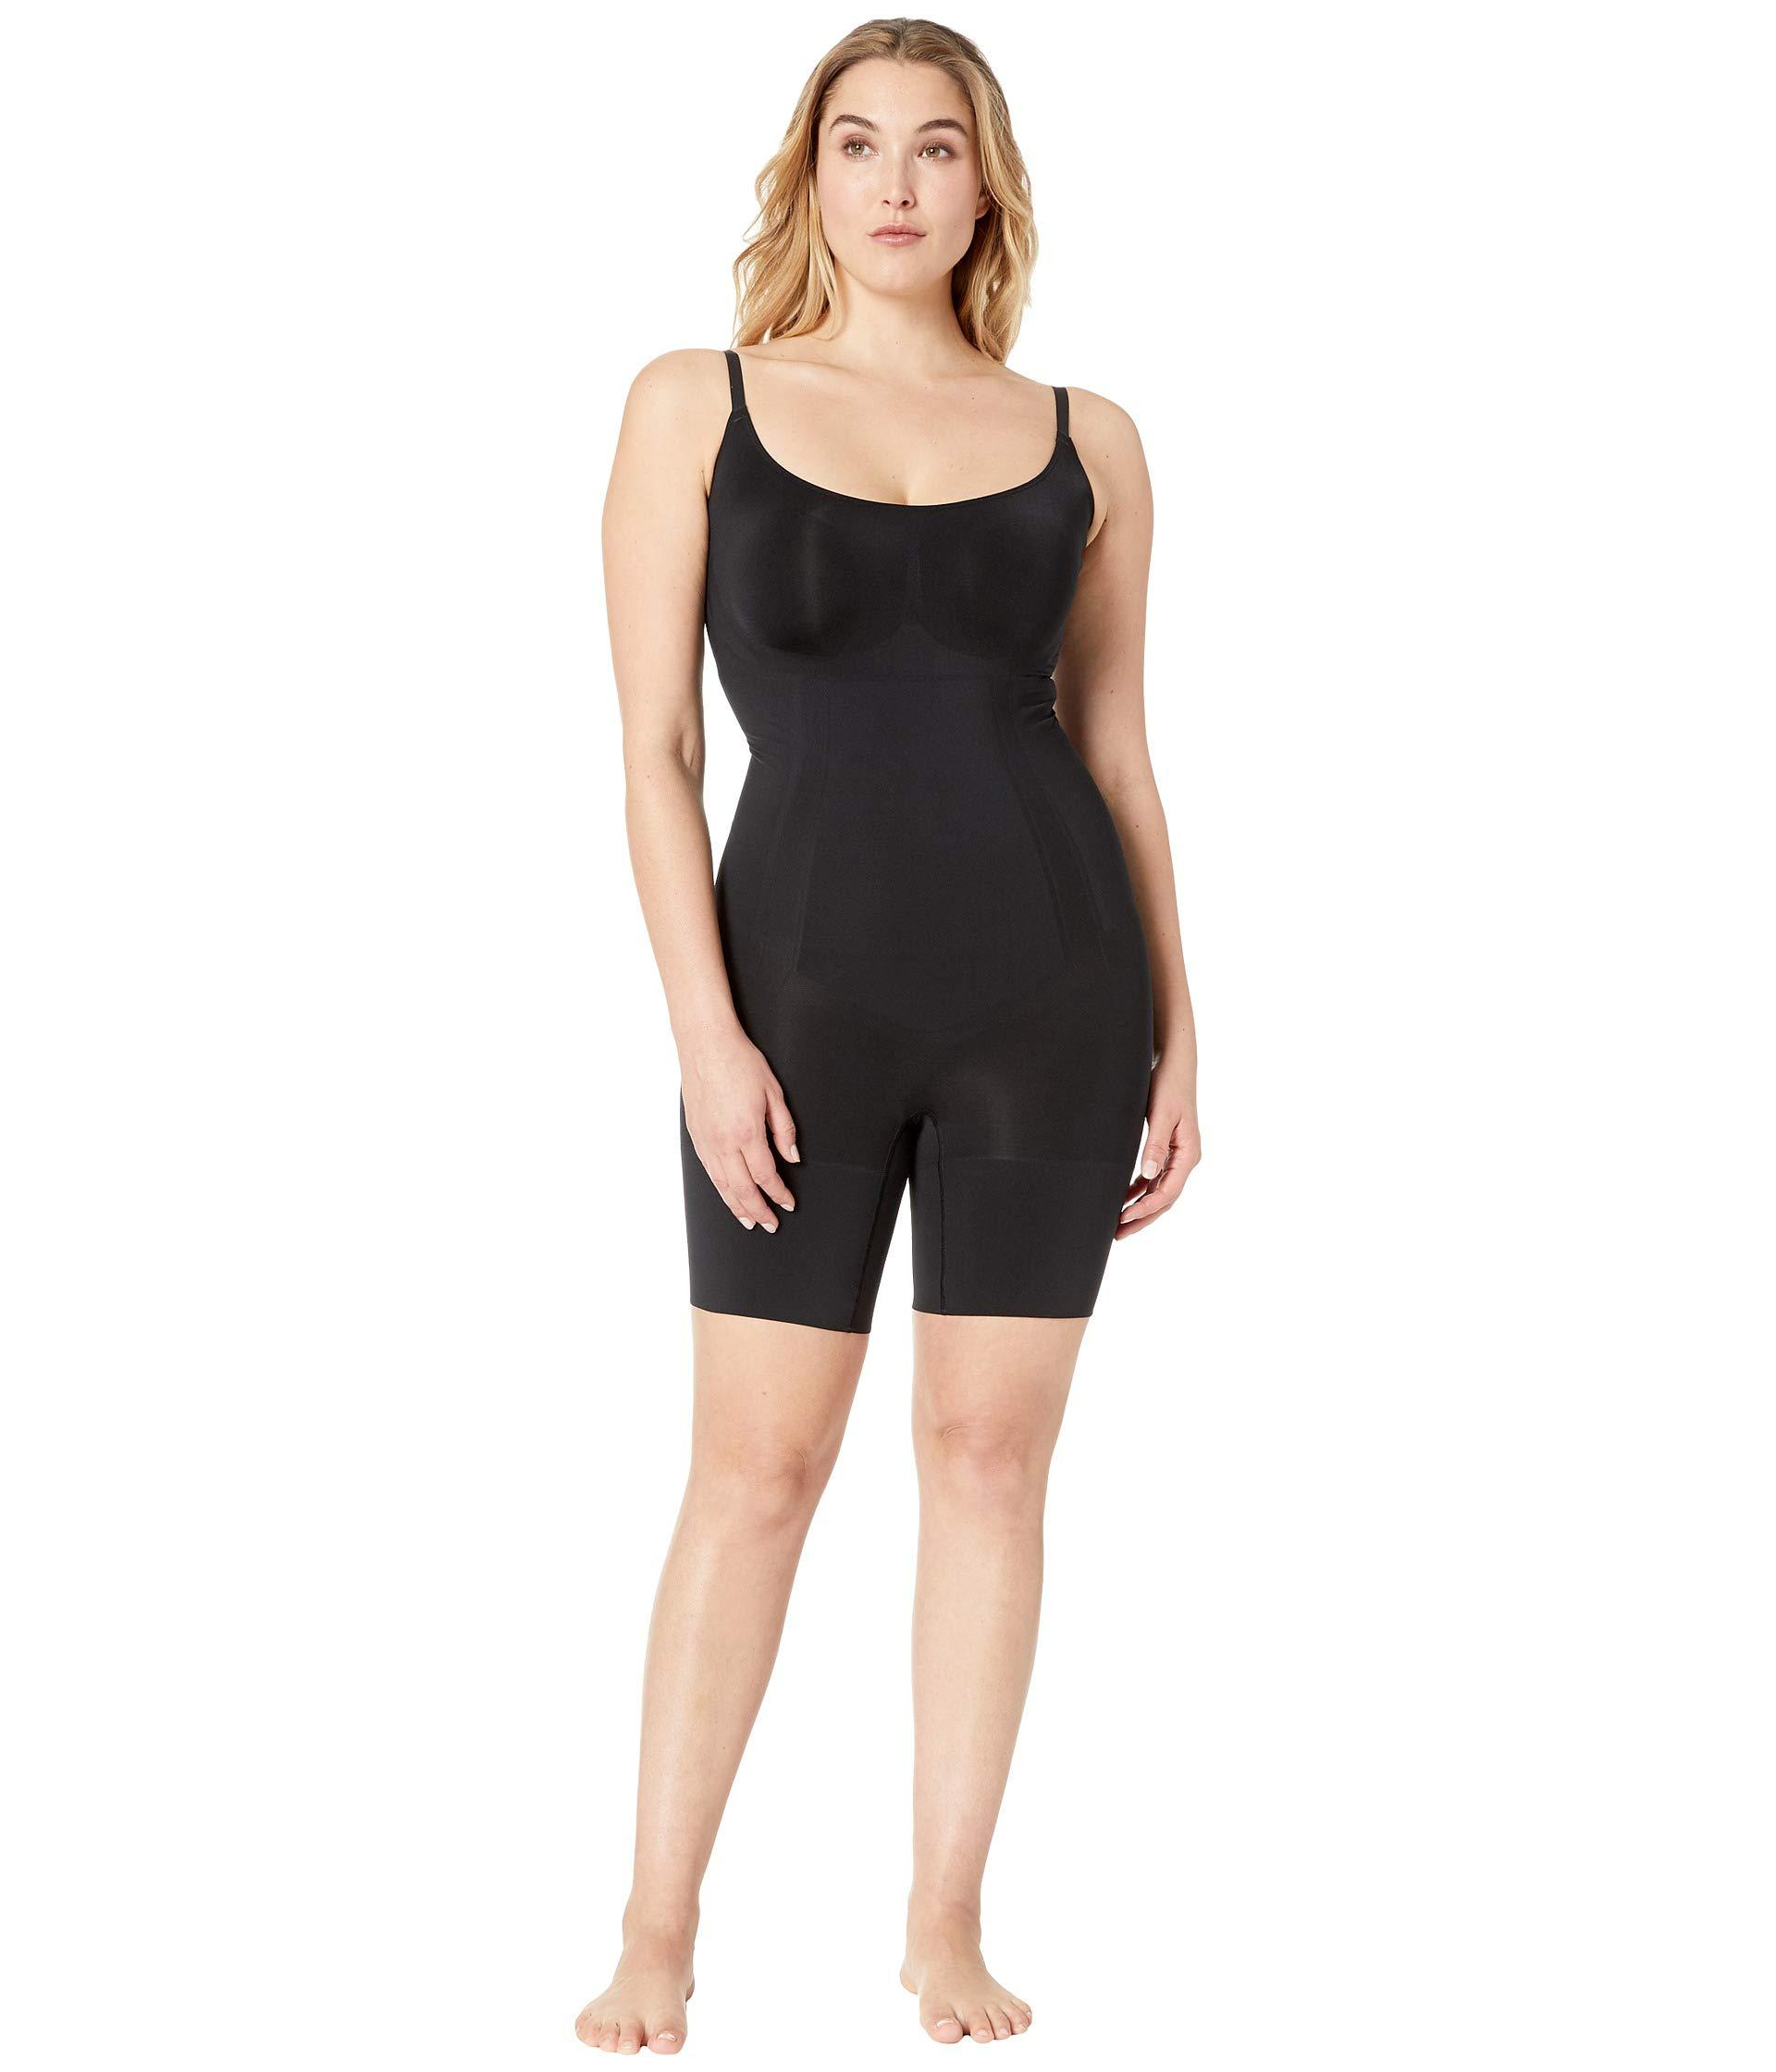 Spanx Synthetic Plus Size Oncore Mid-thigh Bodysuit in Black - Lyst